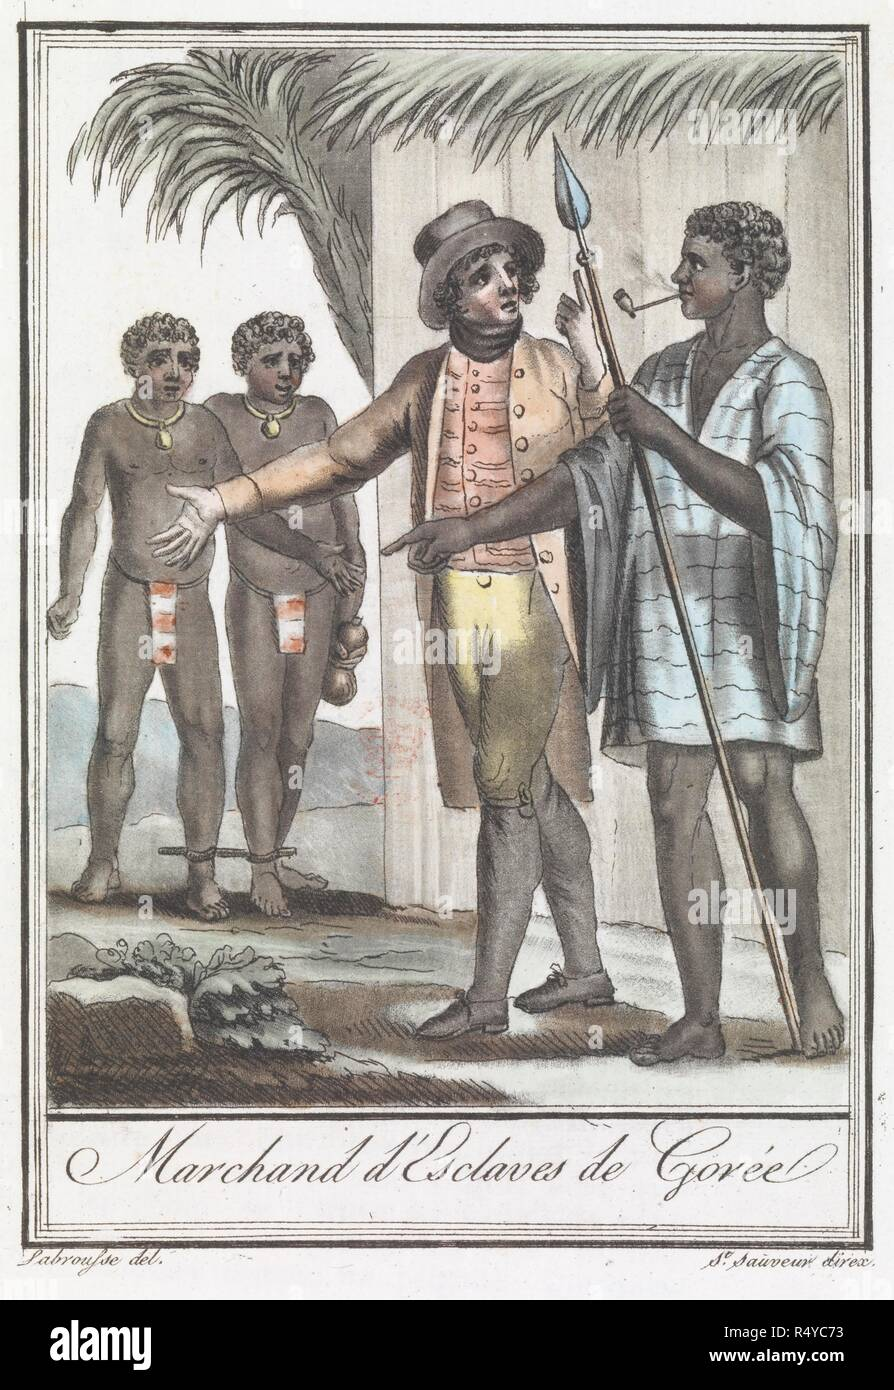 Marchand d' Esclaves de Goree. Encyclopedie des Voyages ... Paris, 1796. A slave owner and slaves. Image taken from: Encyclopedie des Voyages ...  Paris, 1796 . Source: 1259.b.16. - Stock Image